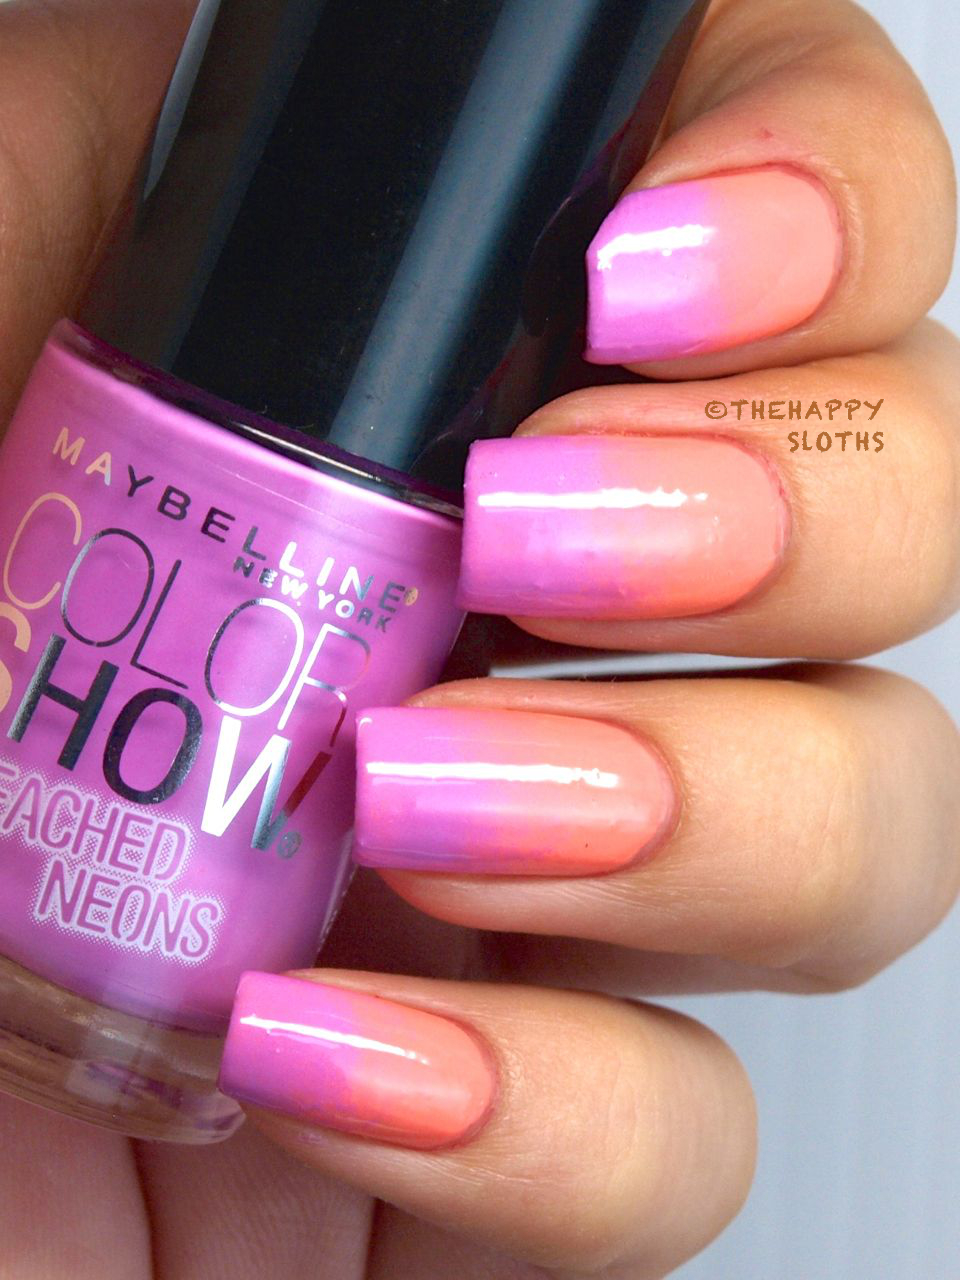 Summer Gradient with Maybelline Color Show Bleached Neons Nail ...